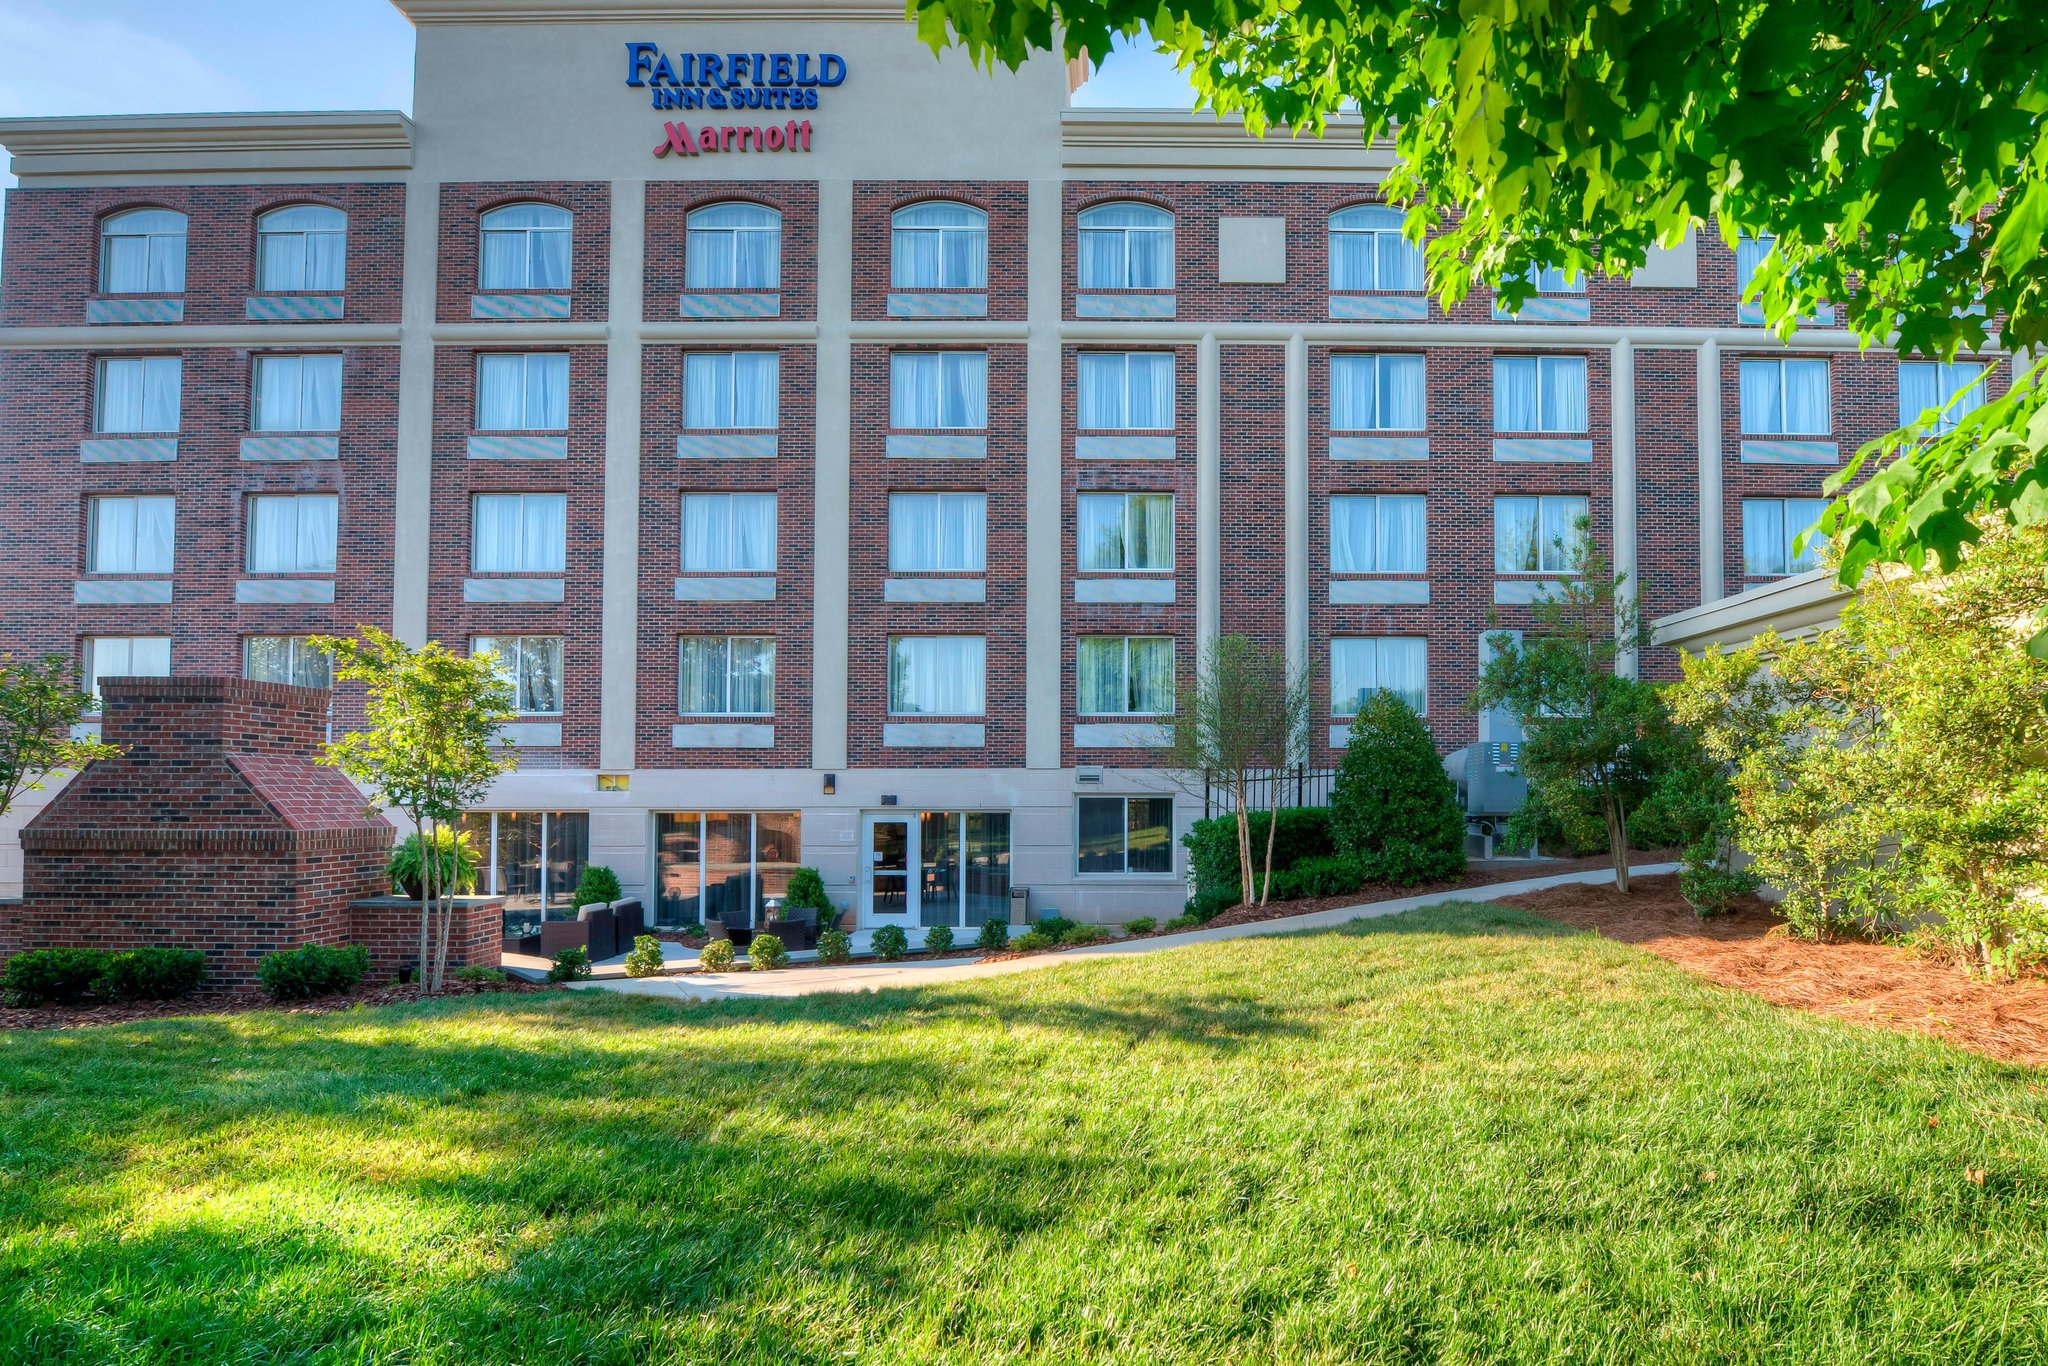 Fairfield Inn/Suites Winston-Salem Dtwn